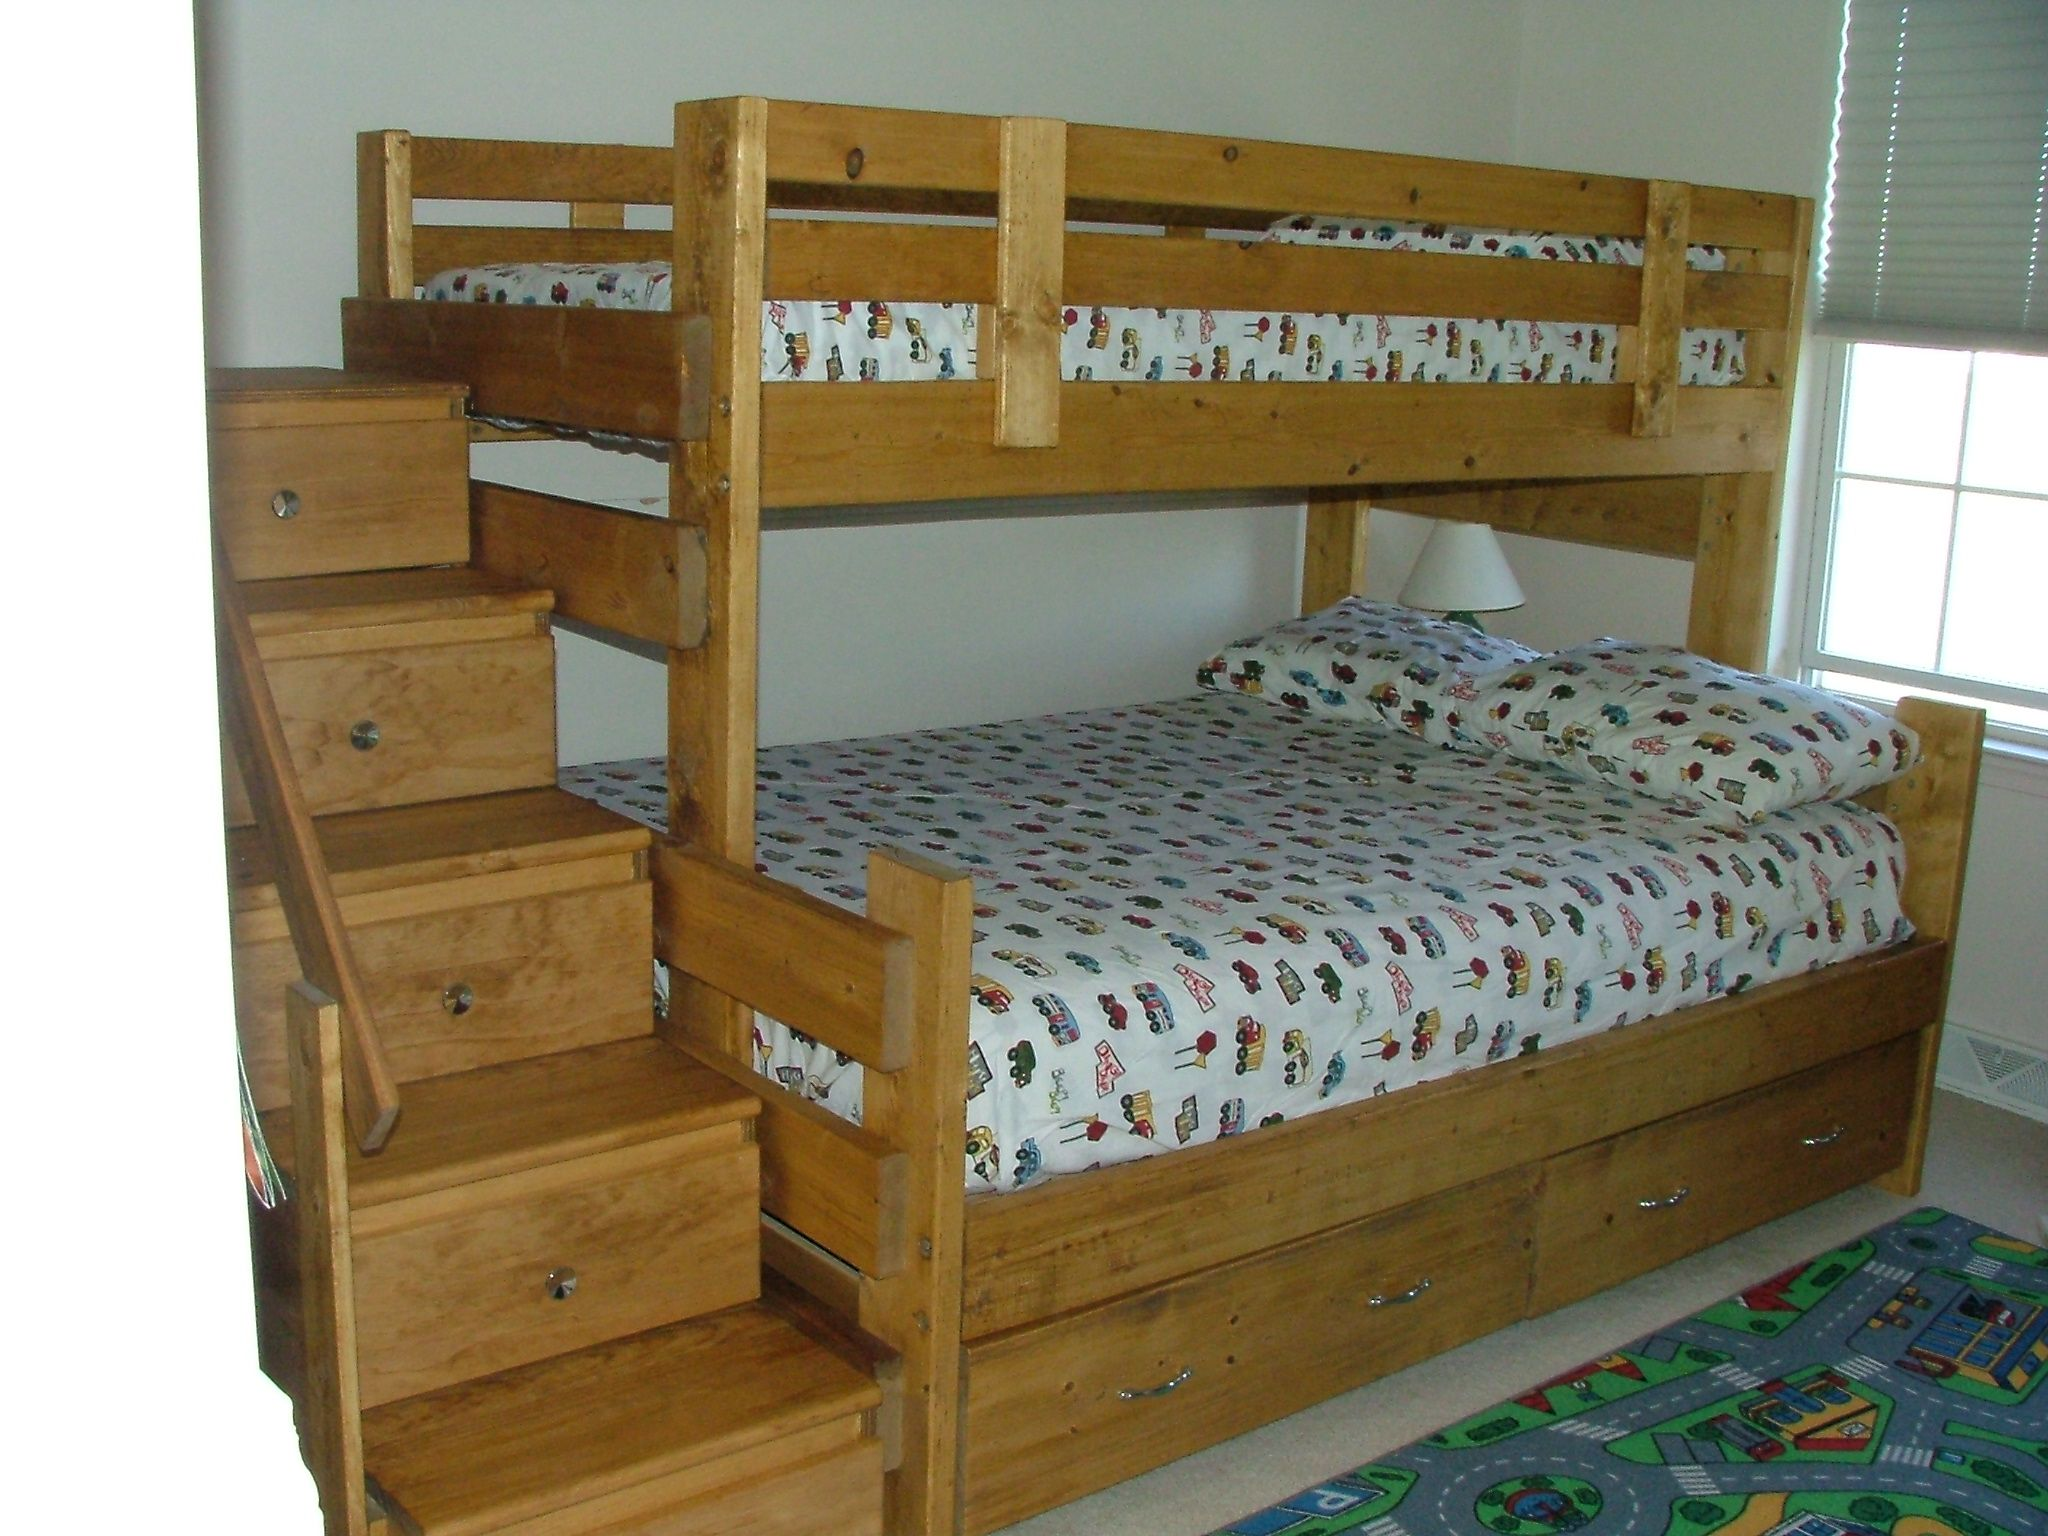 Build bunk bed plans These free bunk bed plans will help ...